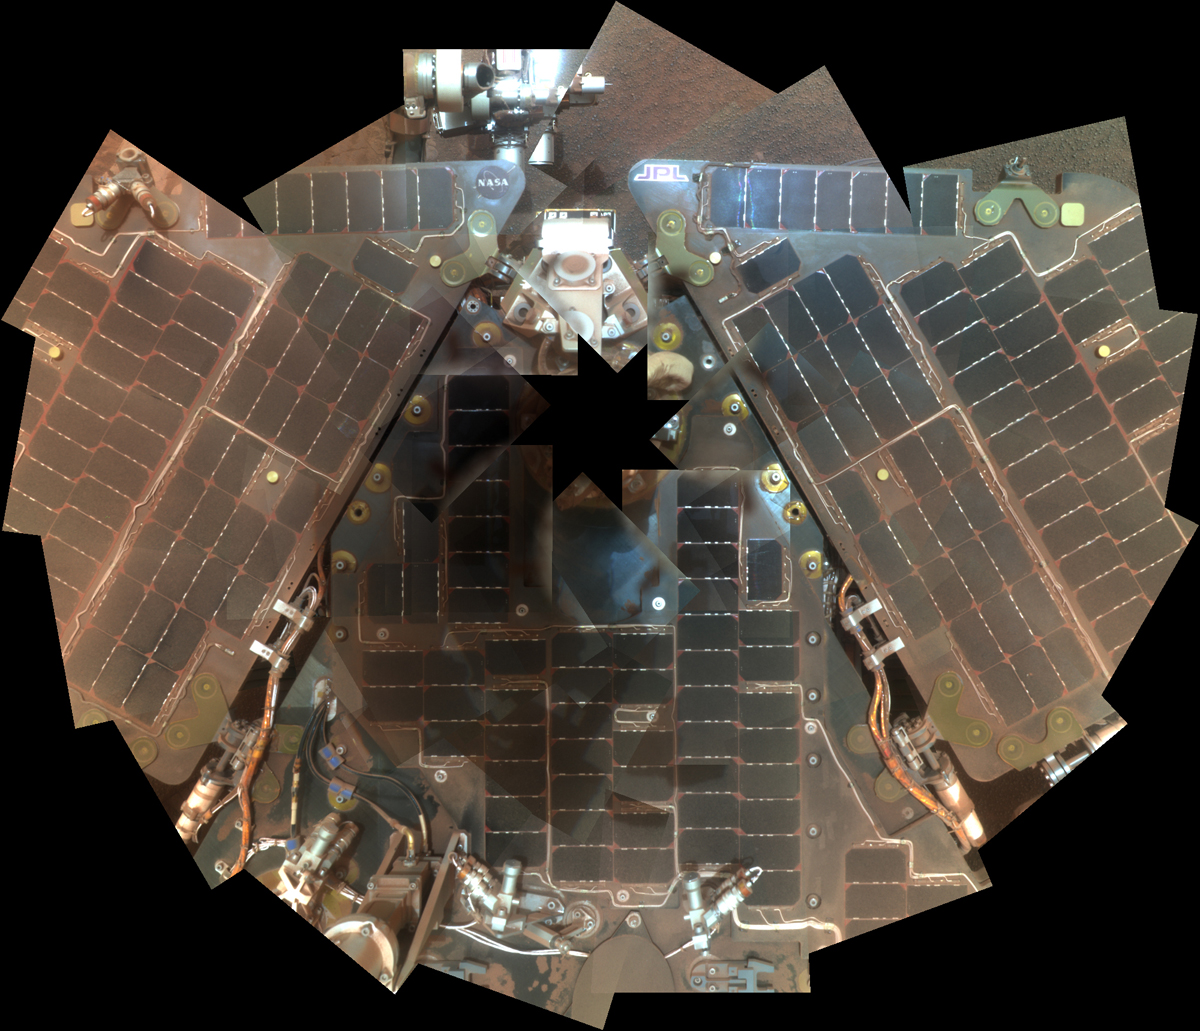 Opportunity Rover Self-Portrait From 2007